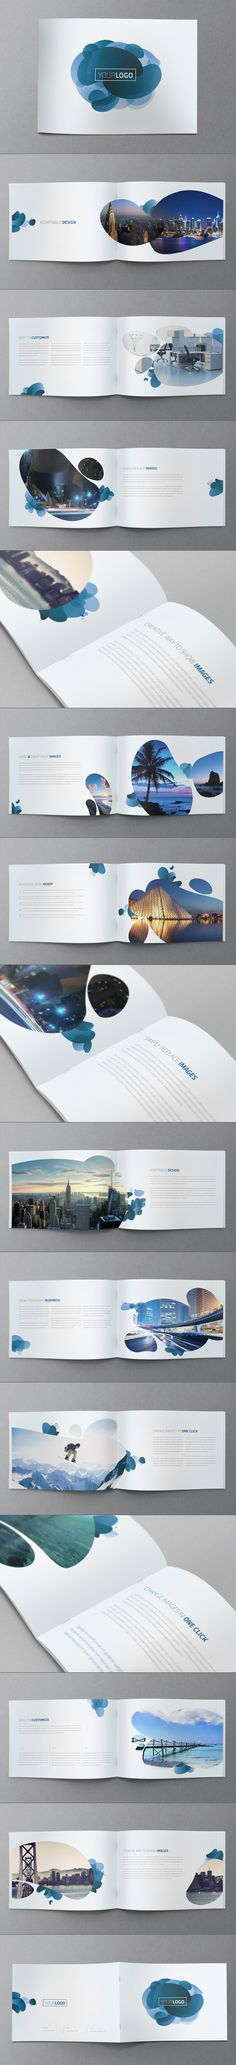 Abstract Brochure Design by Abra Design, via Behance